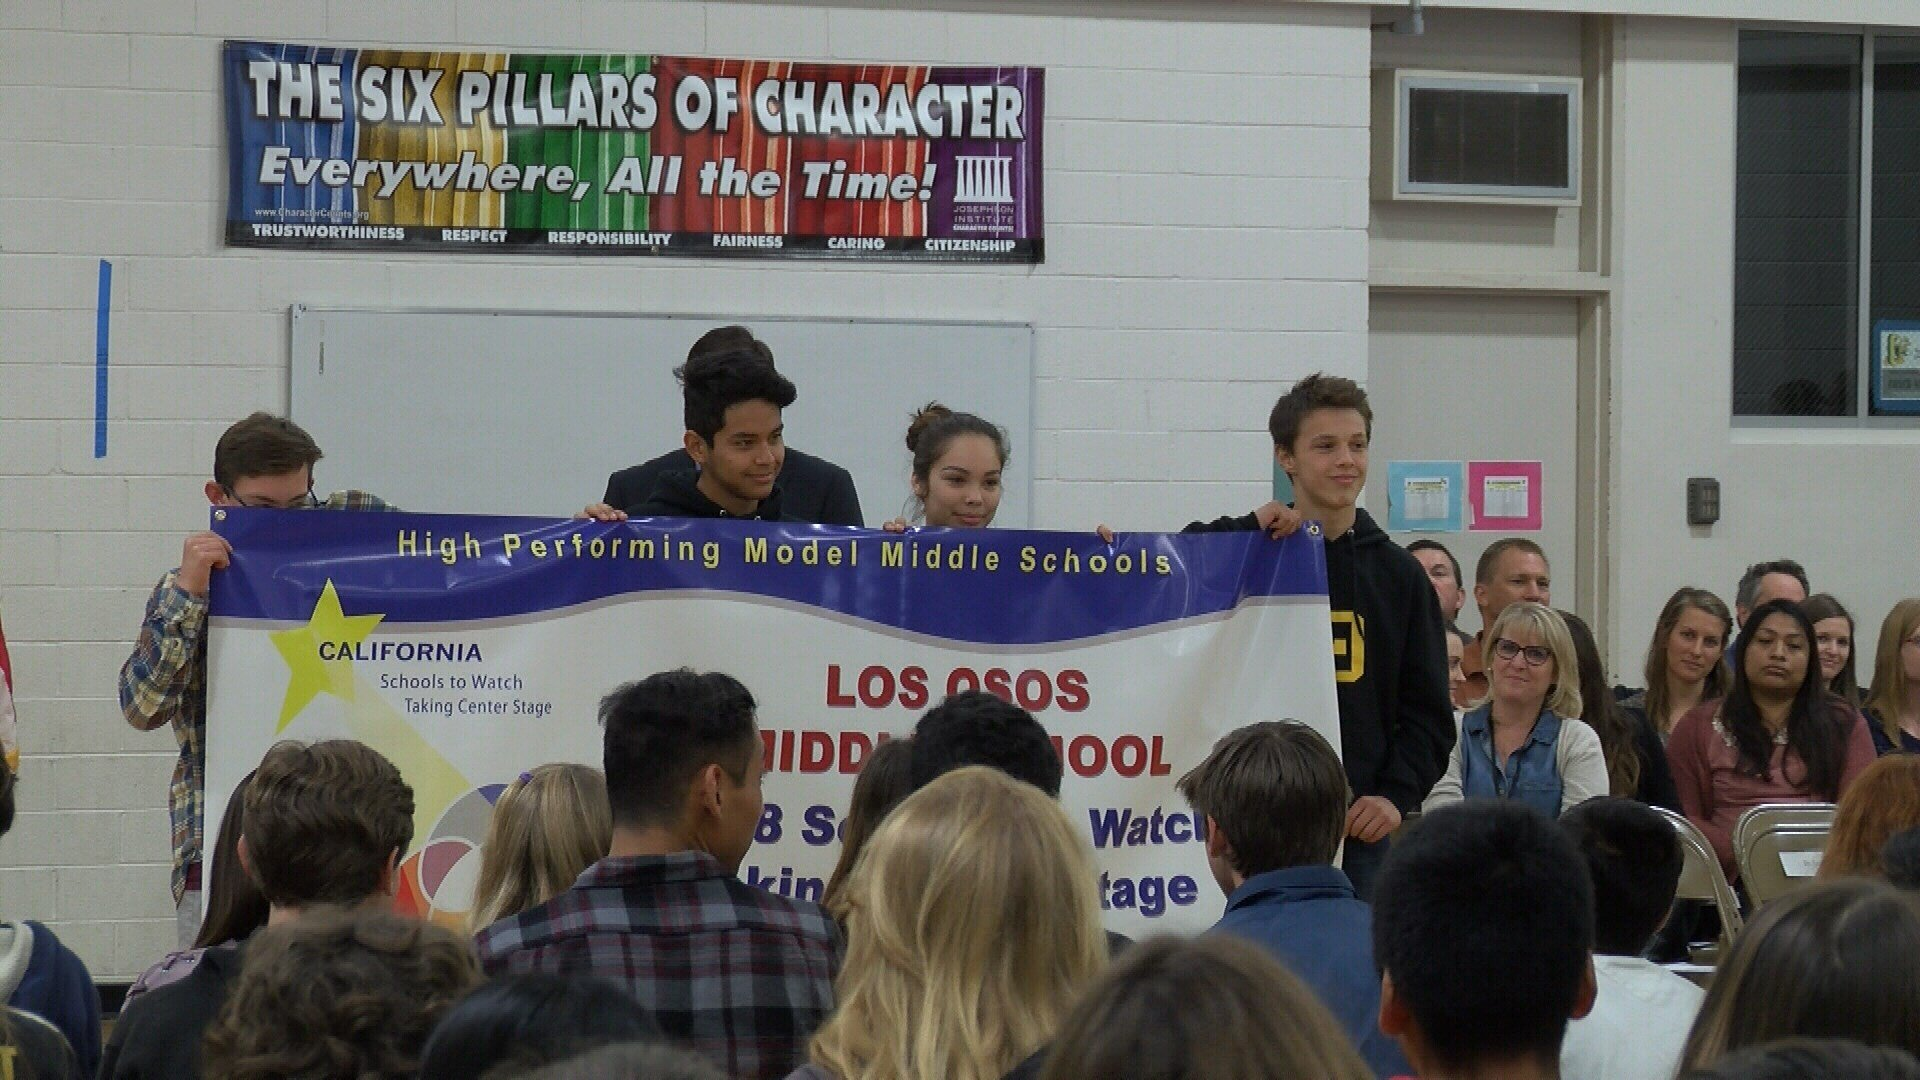 Los Osos Middle School was presented with a special banner Monday to recognize its achievement. (KSBY photo)